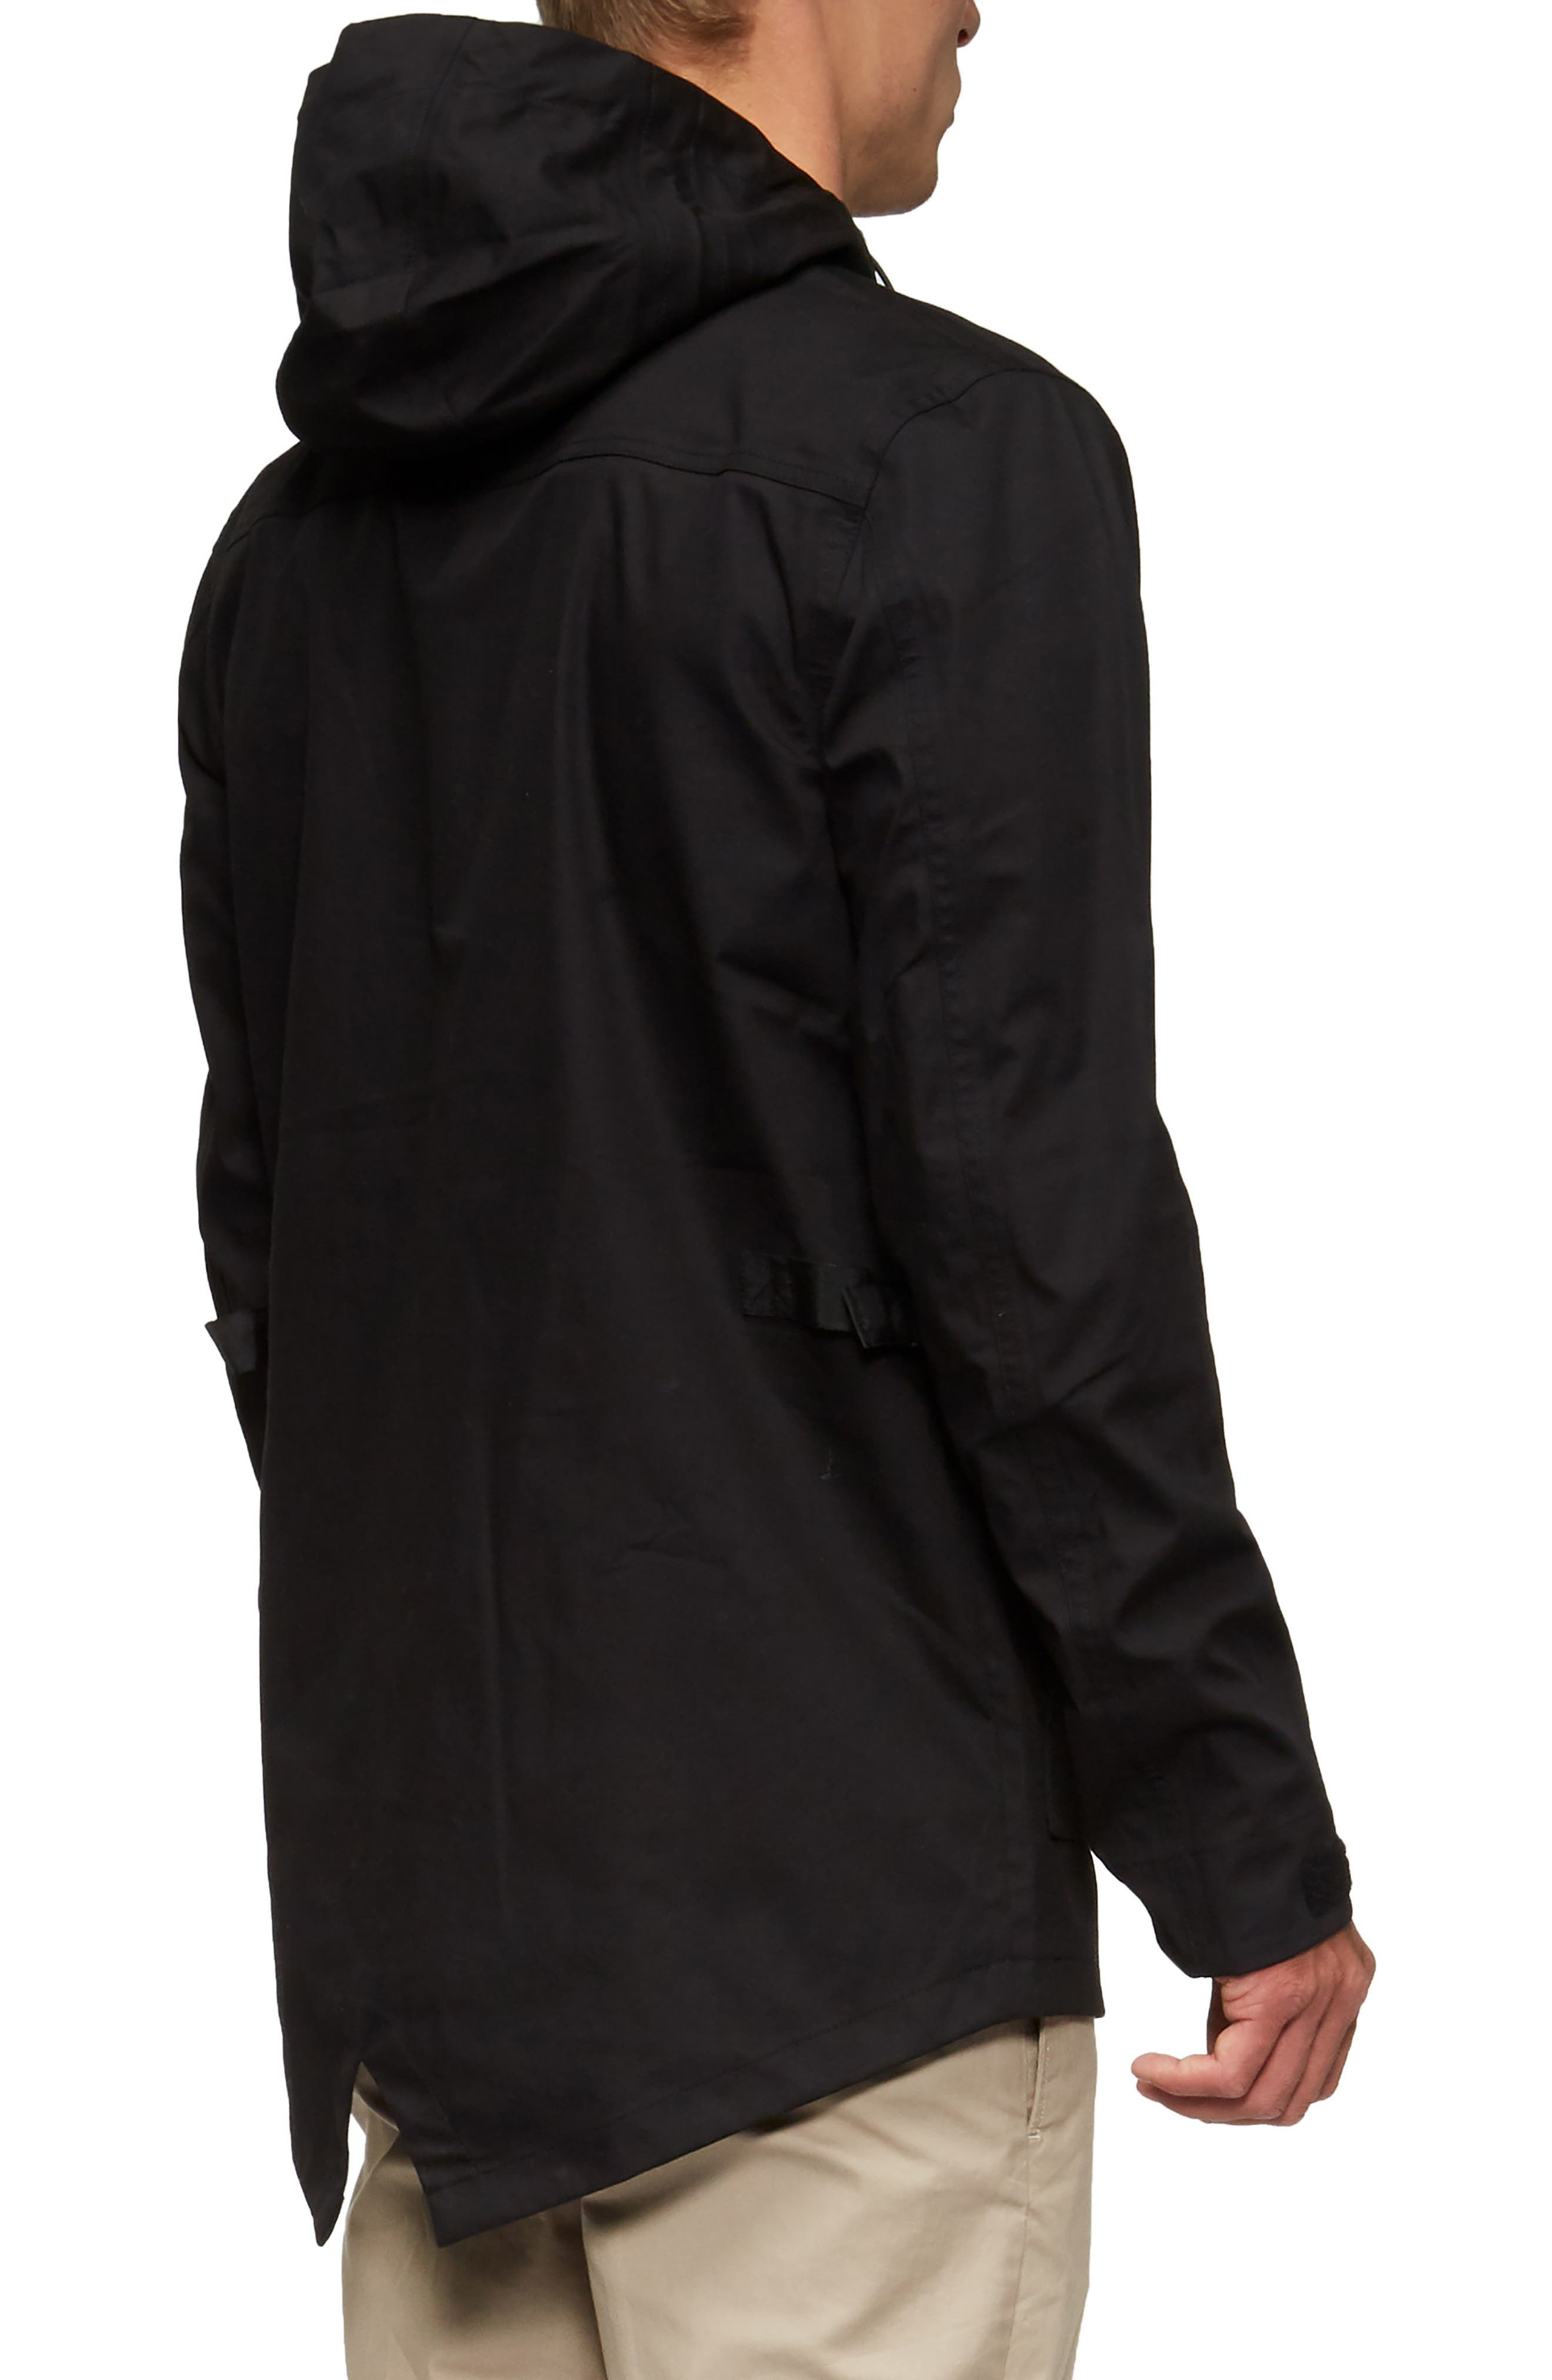 Ridley Parka,                             Alternate thumbnail 2, color,                             Black